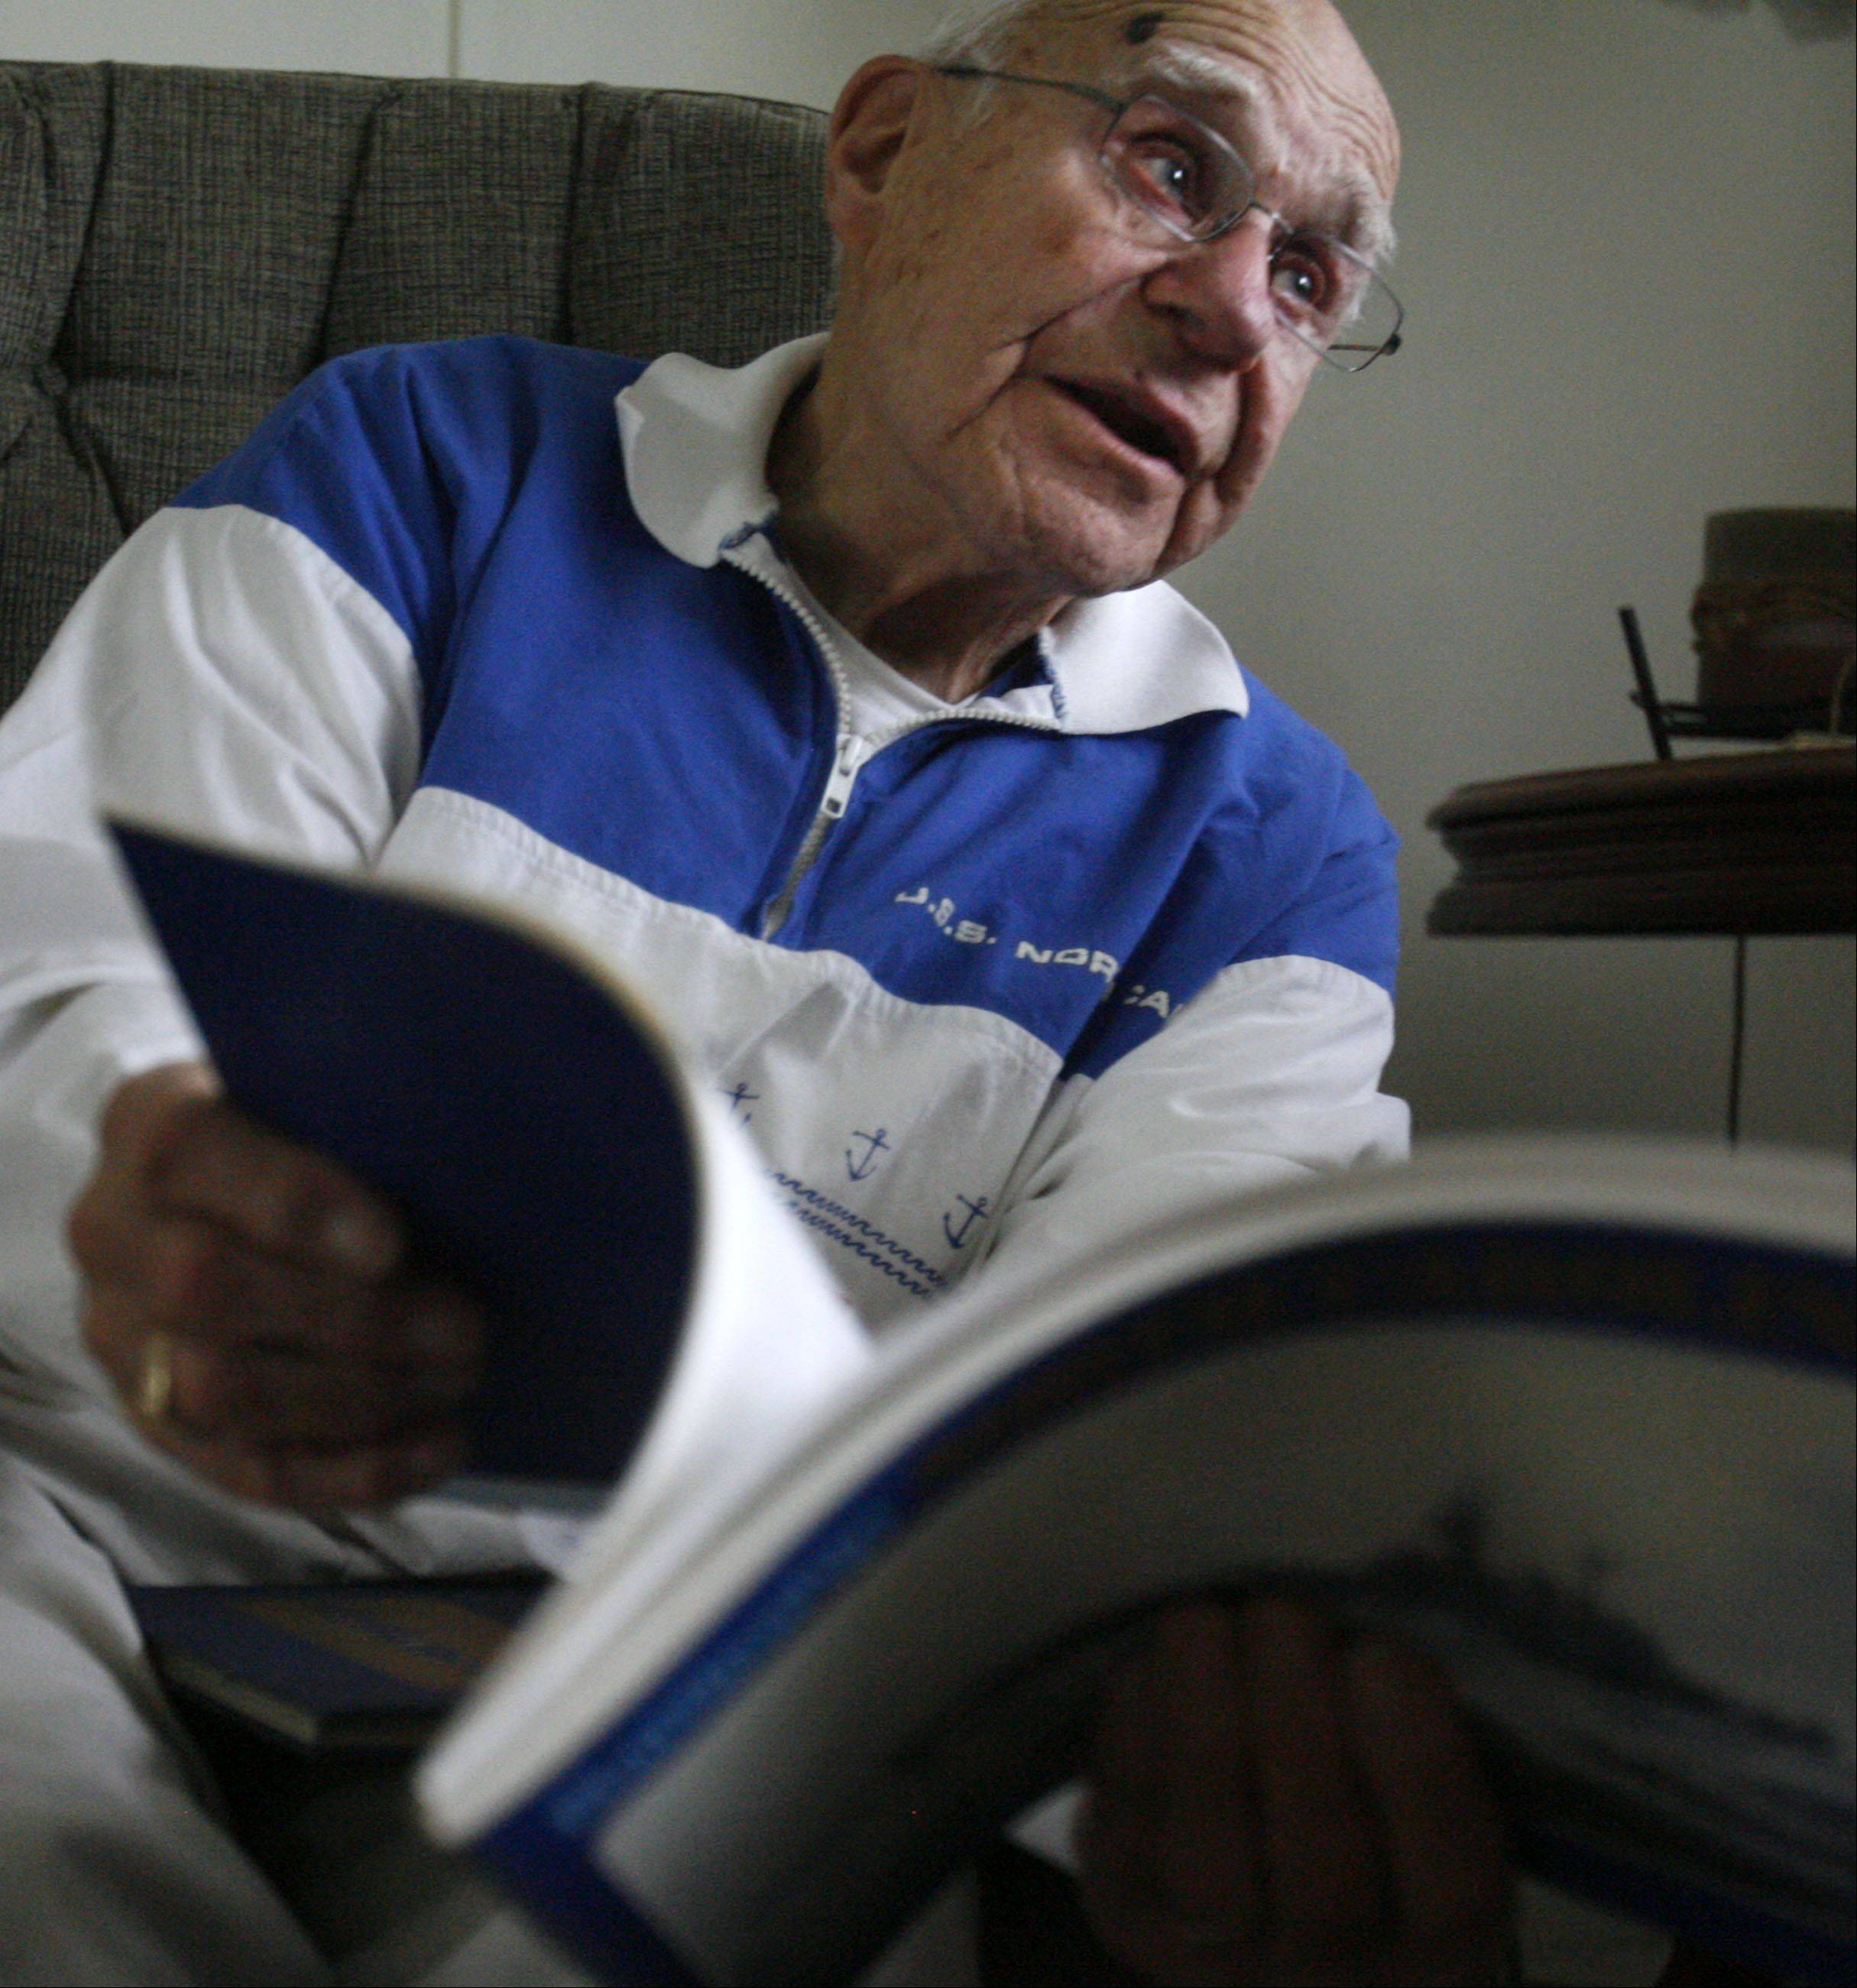 Lake Zurich Navy veteran Robert Wallace talks about serving on the battleship USS North Carolina during World War II.